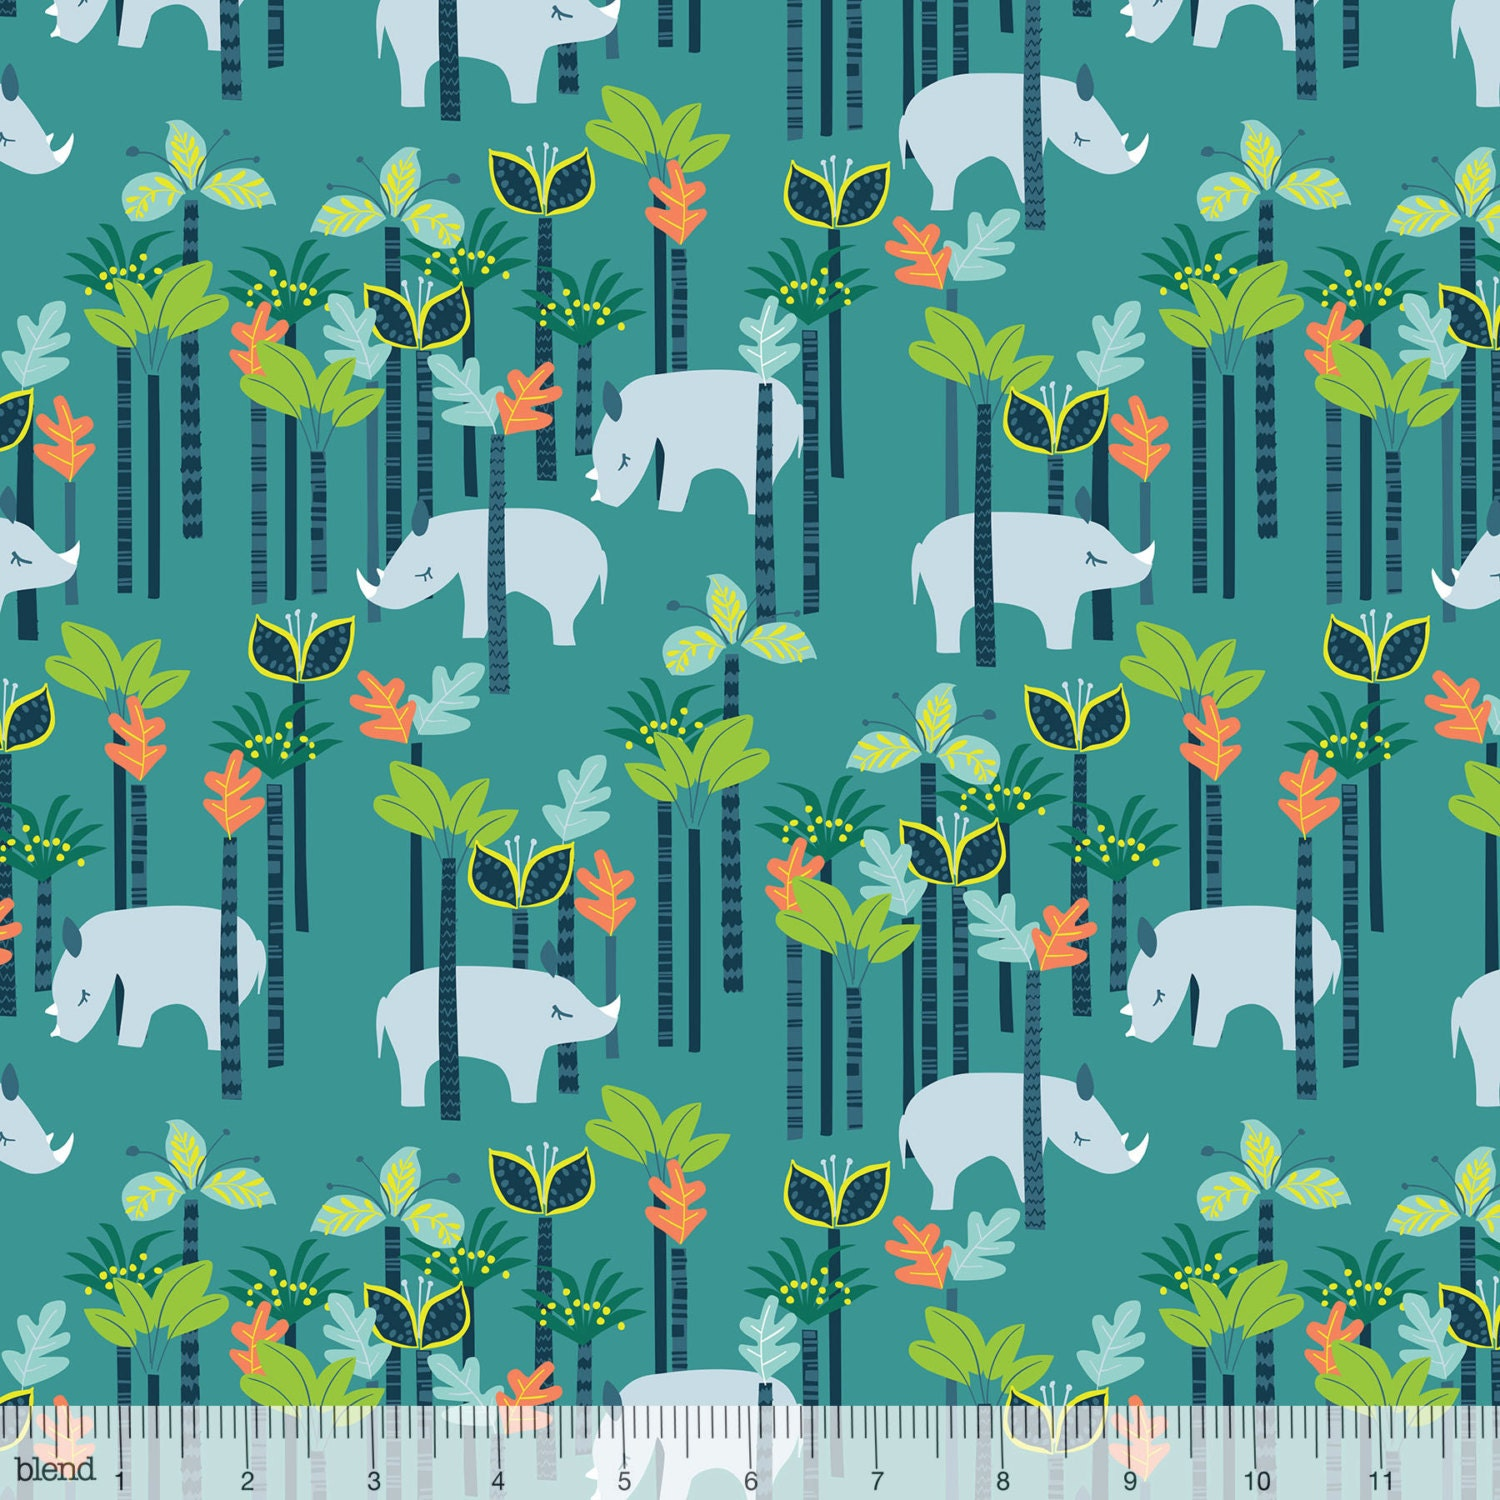 Sundaland jungle rhinos in blue by katy tanis for blend for Kids jungle fabric